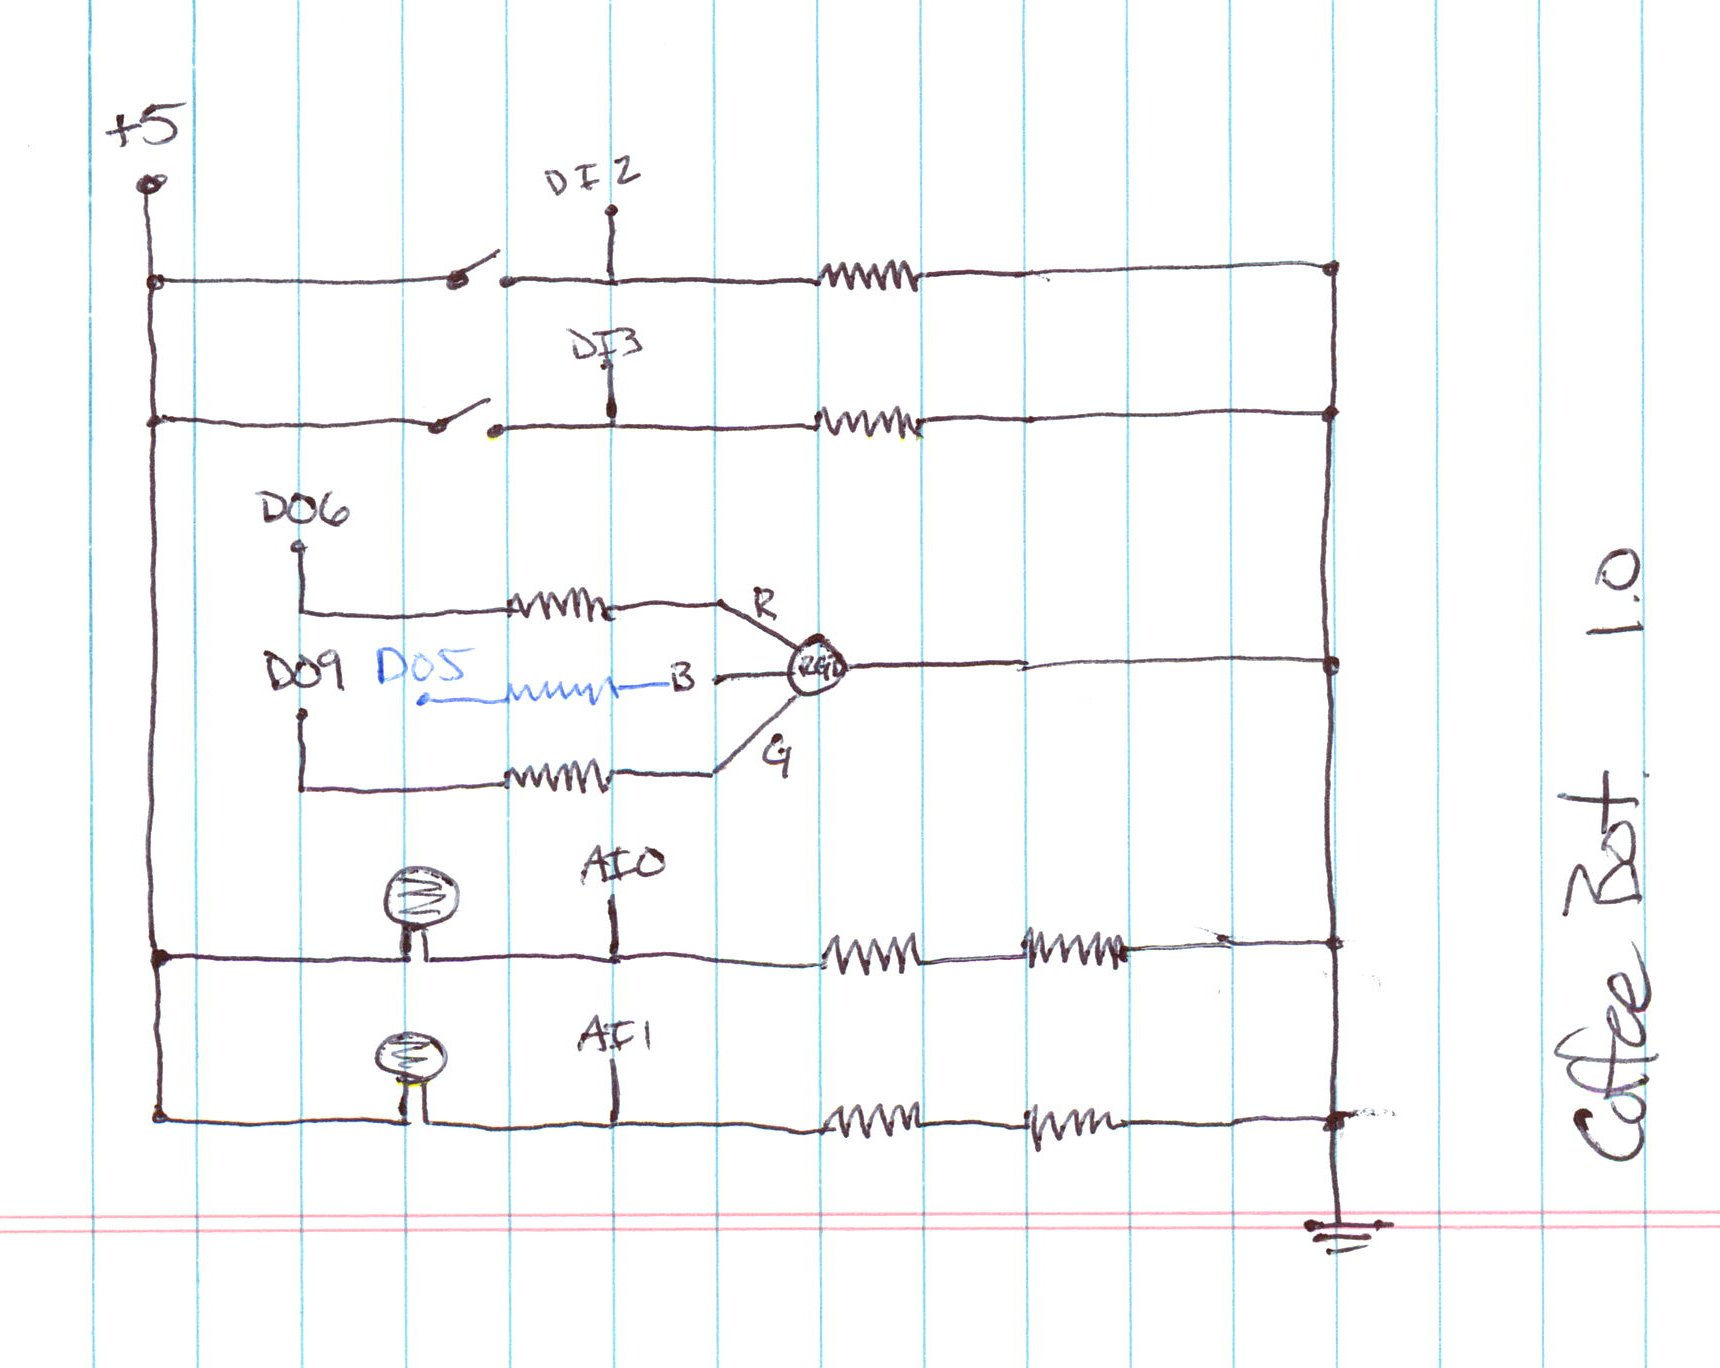 hight resolution of coffee maker schematic diagram wiring diagram lyc coffee pot wiring diagram